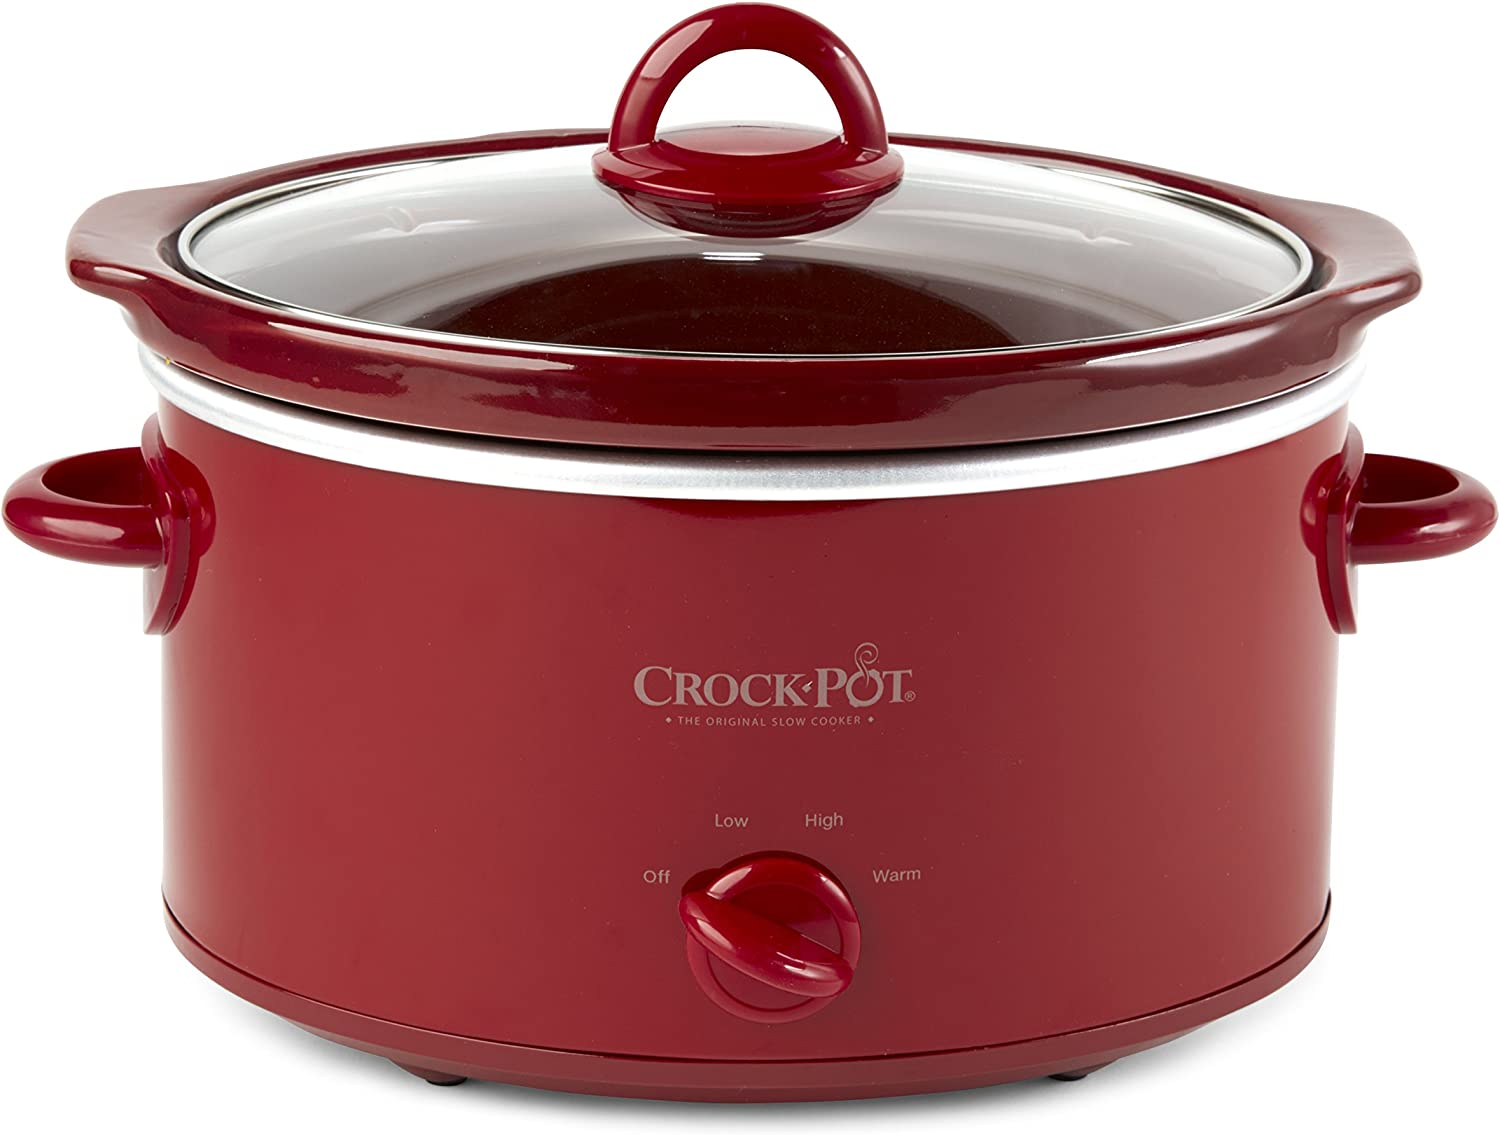 Crock-Pot, Red SCV401-TR 4-Quart Manual Slow Cooker